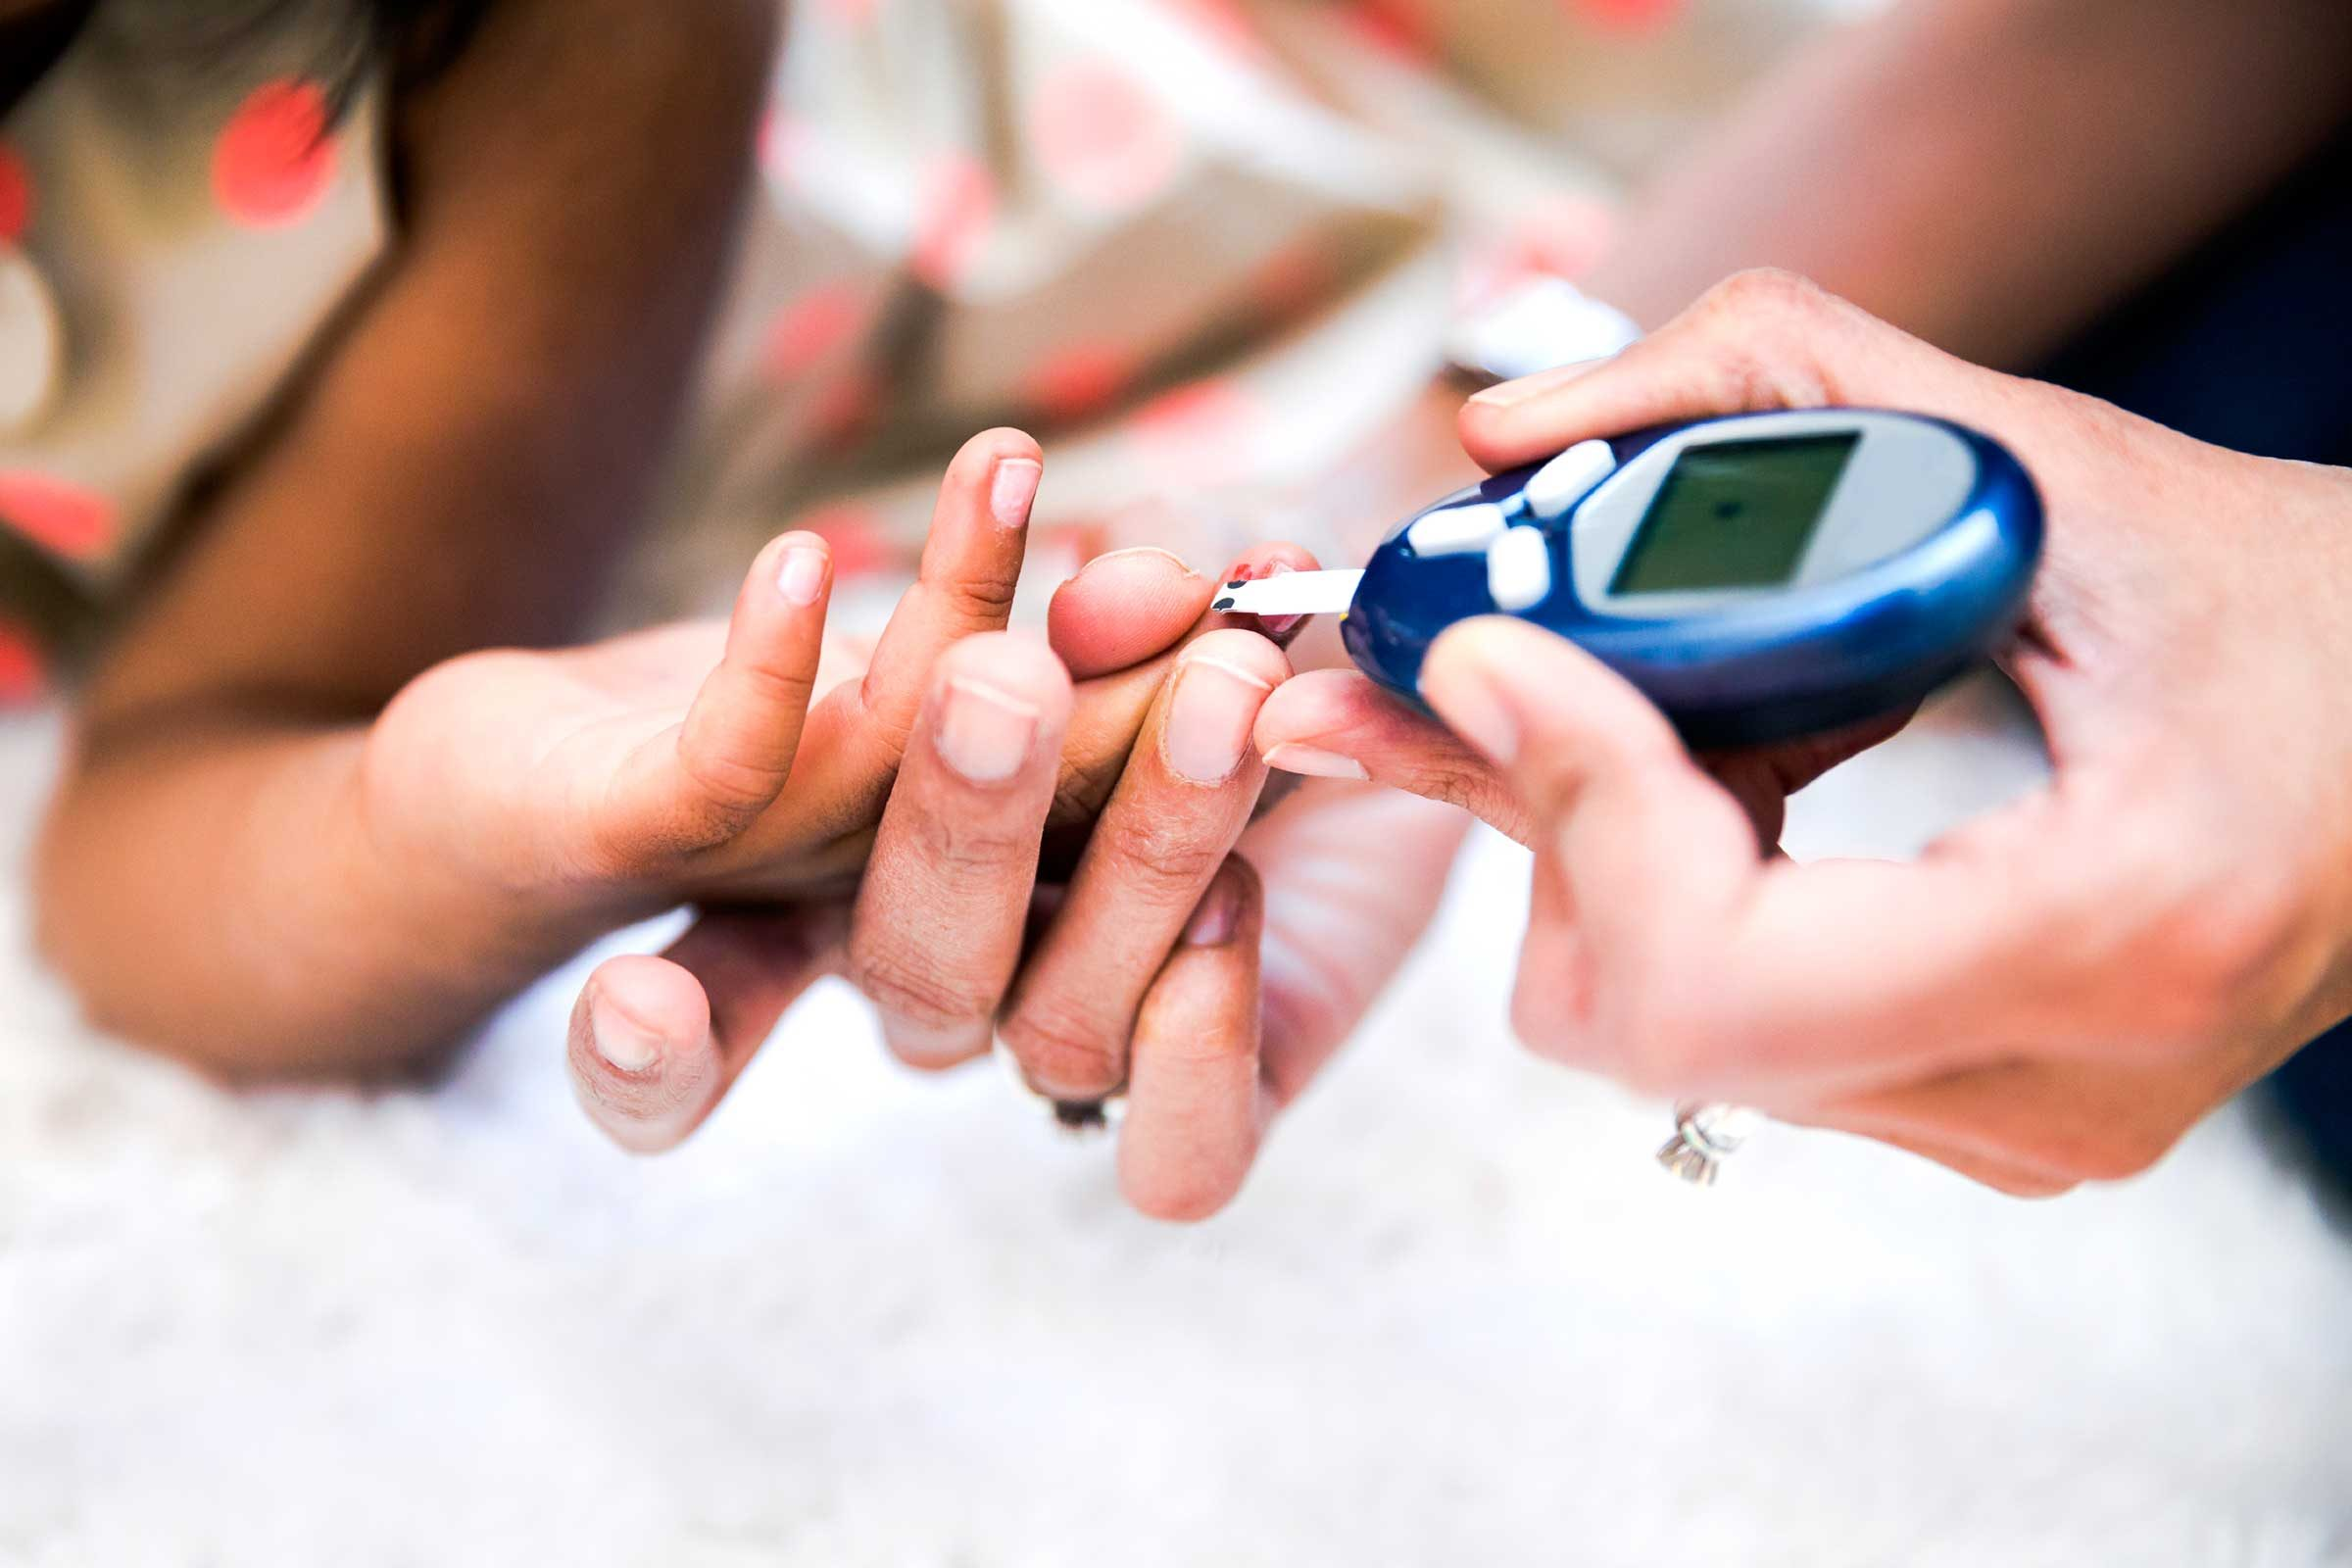 Firstborns: More diabetes and hypertension